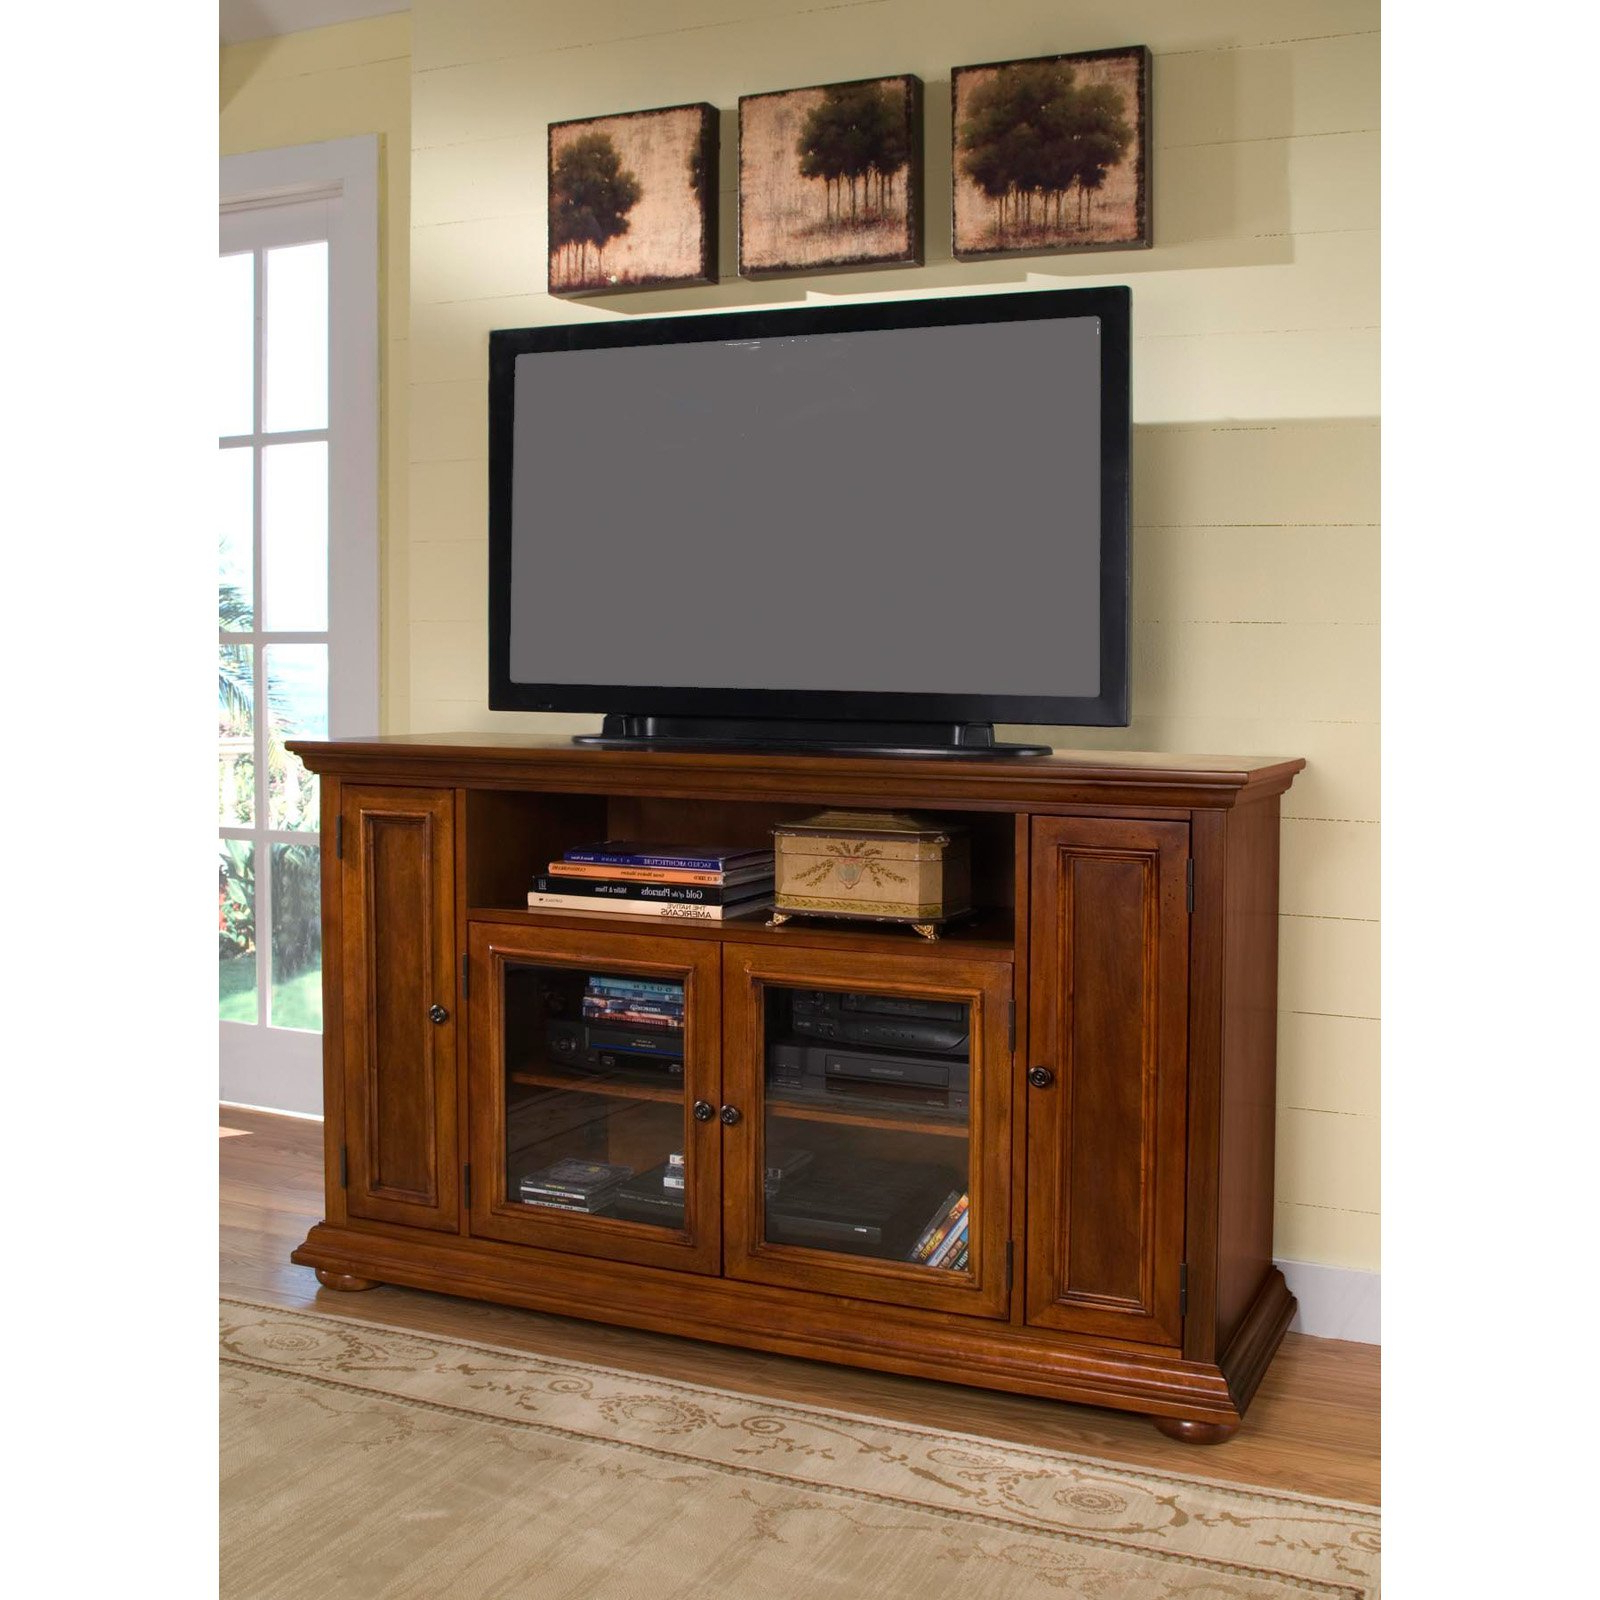 Light Brown Pine Wood Tv Stand With Storage Shelf Of Tall Intended For Most Up To Date Light Colored Tv Stands (View 8 of 20)